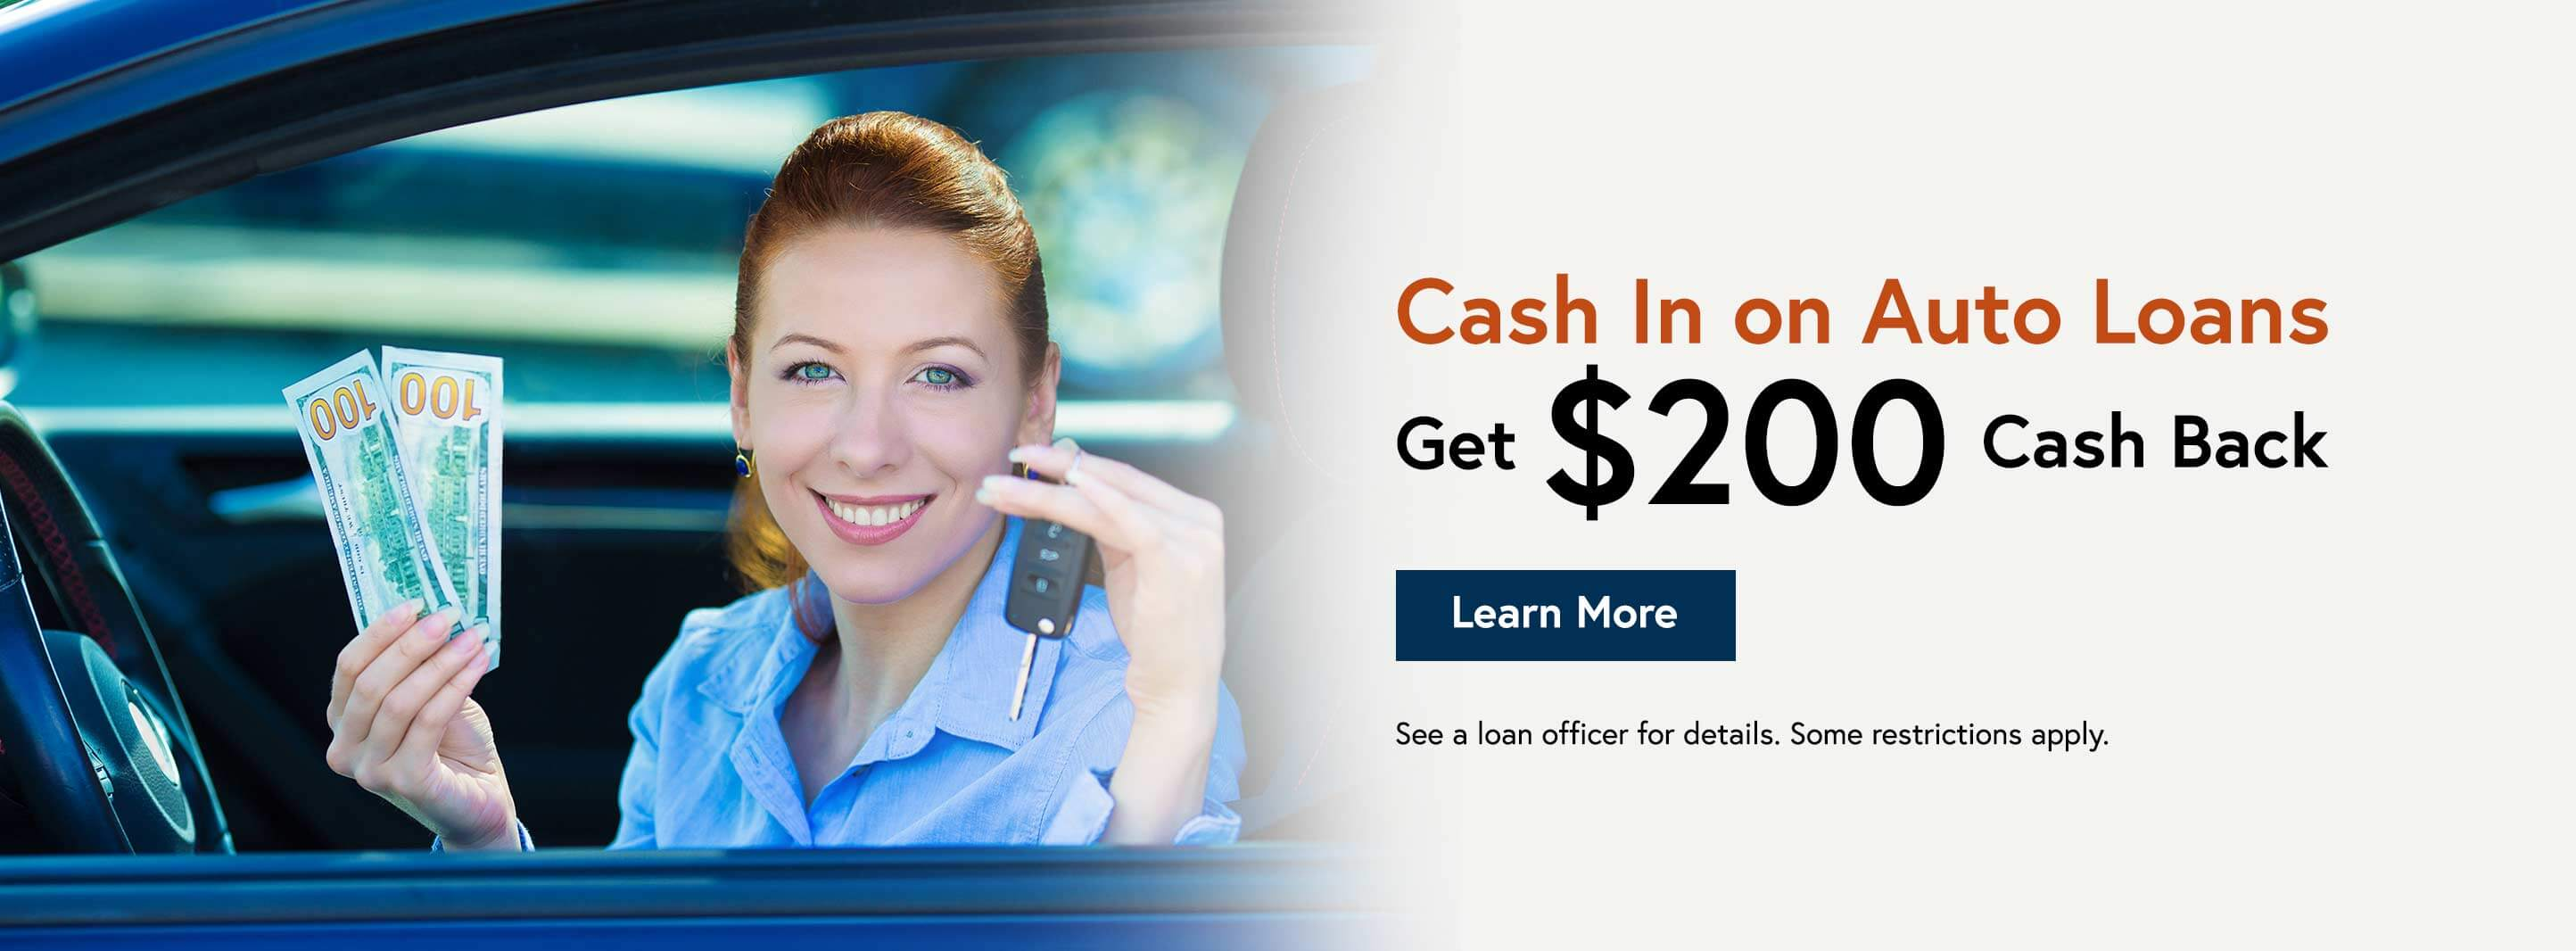 Cash In on Auto Loans Get $200 Cash Back. Learn More. See a loan officer for details. Some restrictions apply.